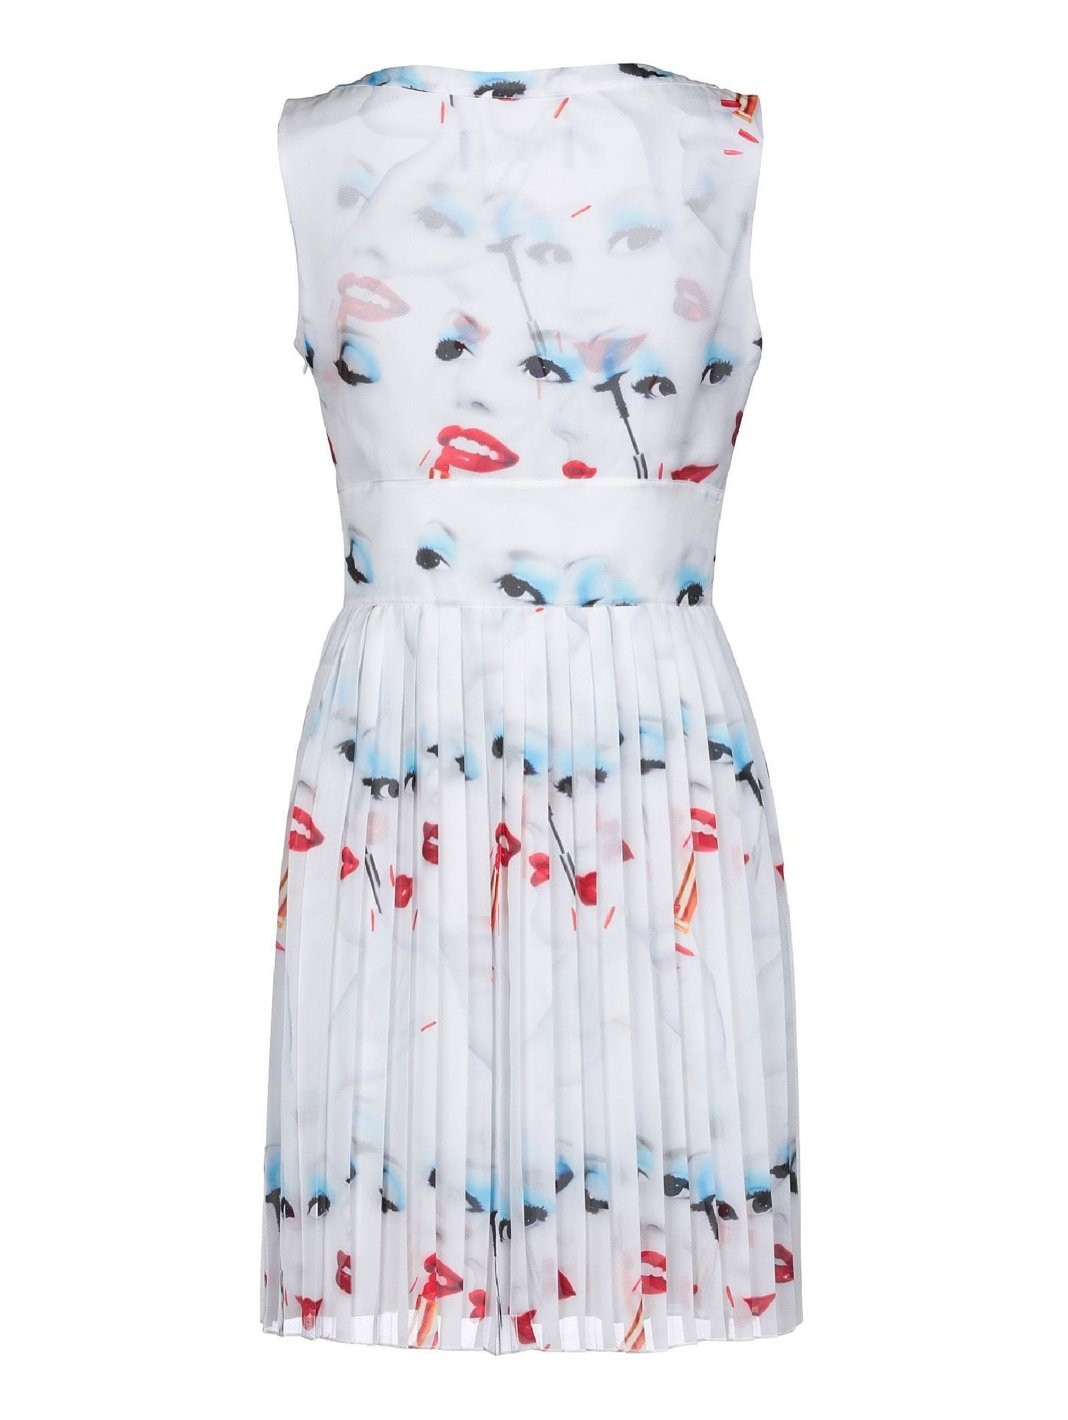 Fantasy Print Mini Dress - The Bobby Boga